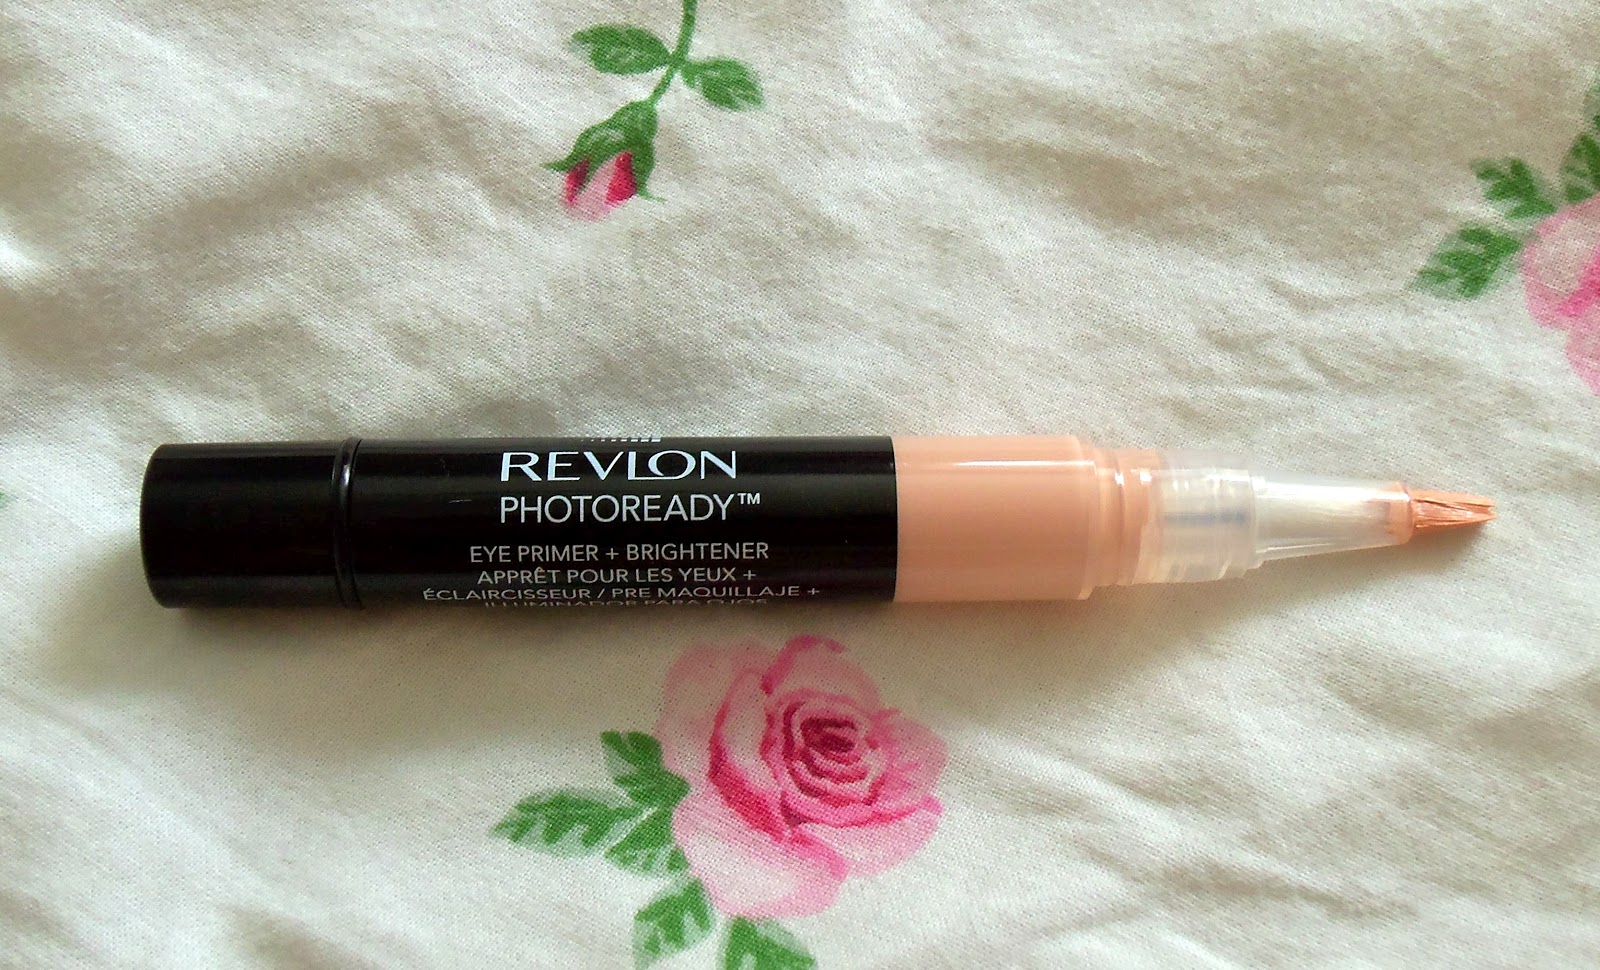 Photoready Eye Primer + Brightener by Revlon #20